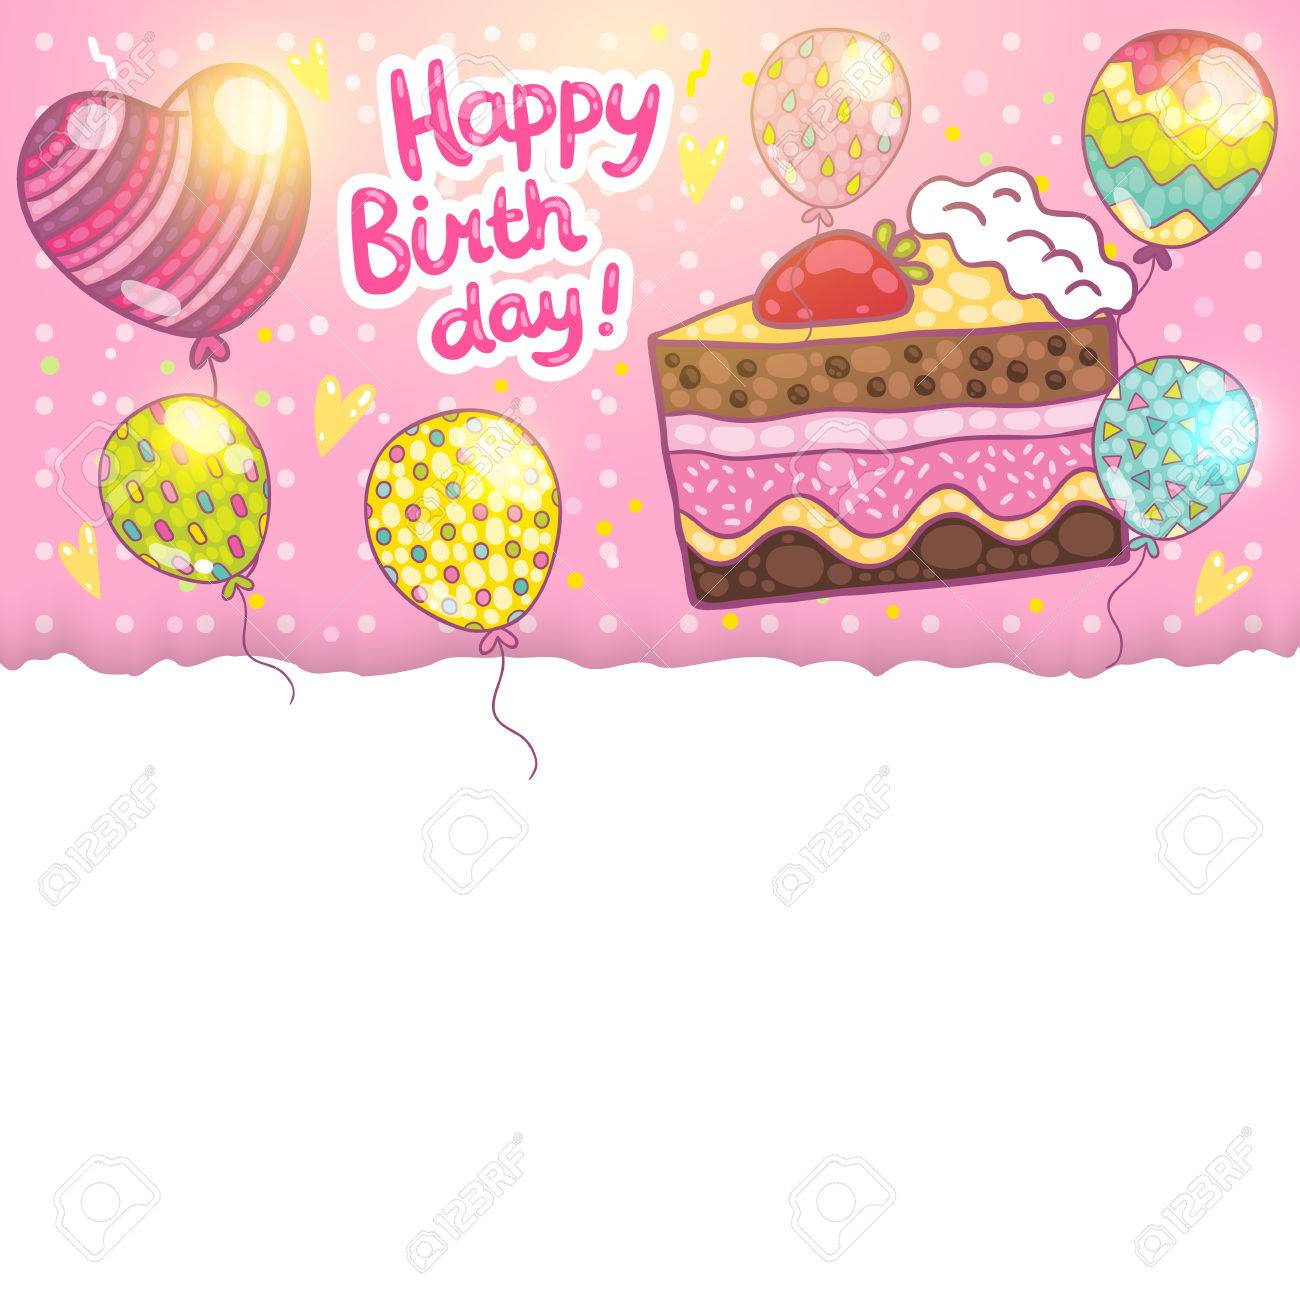 happy birthday card background cake vector holiday party happy birthday card background cake vector holiday party template stock vector 27623811